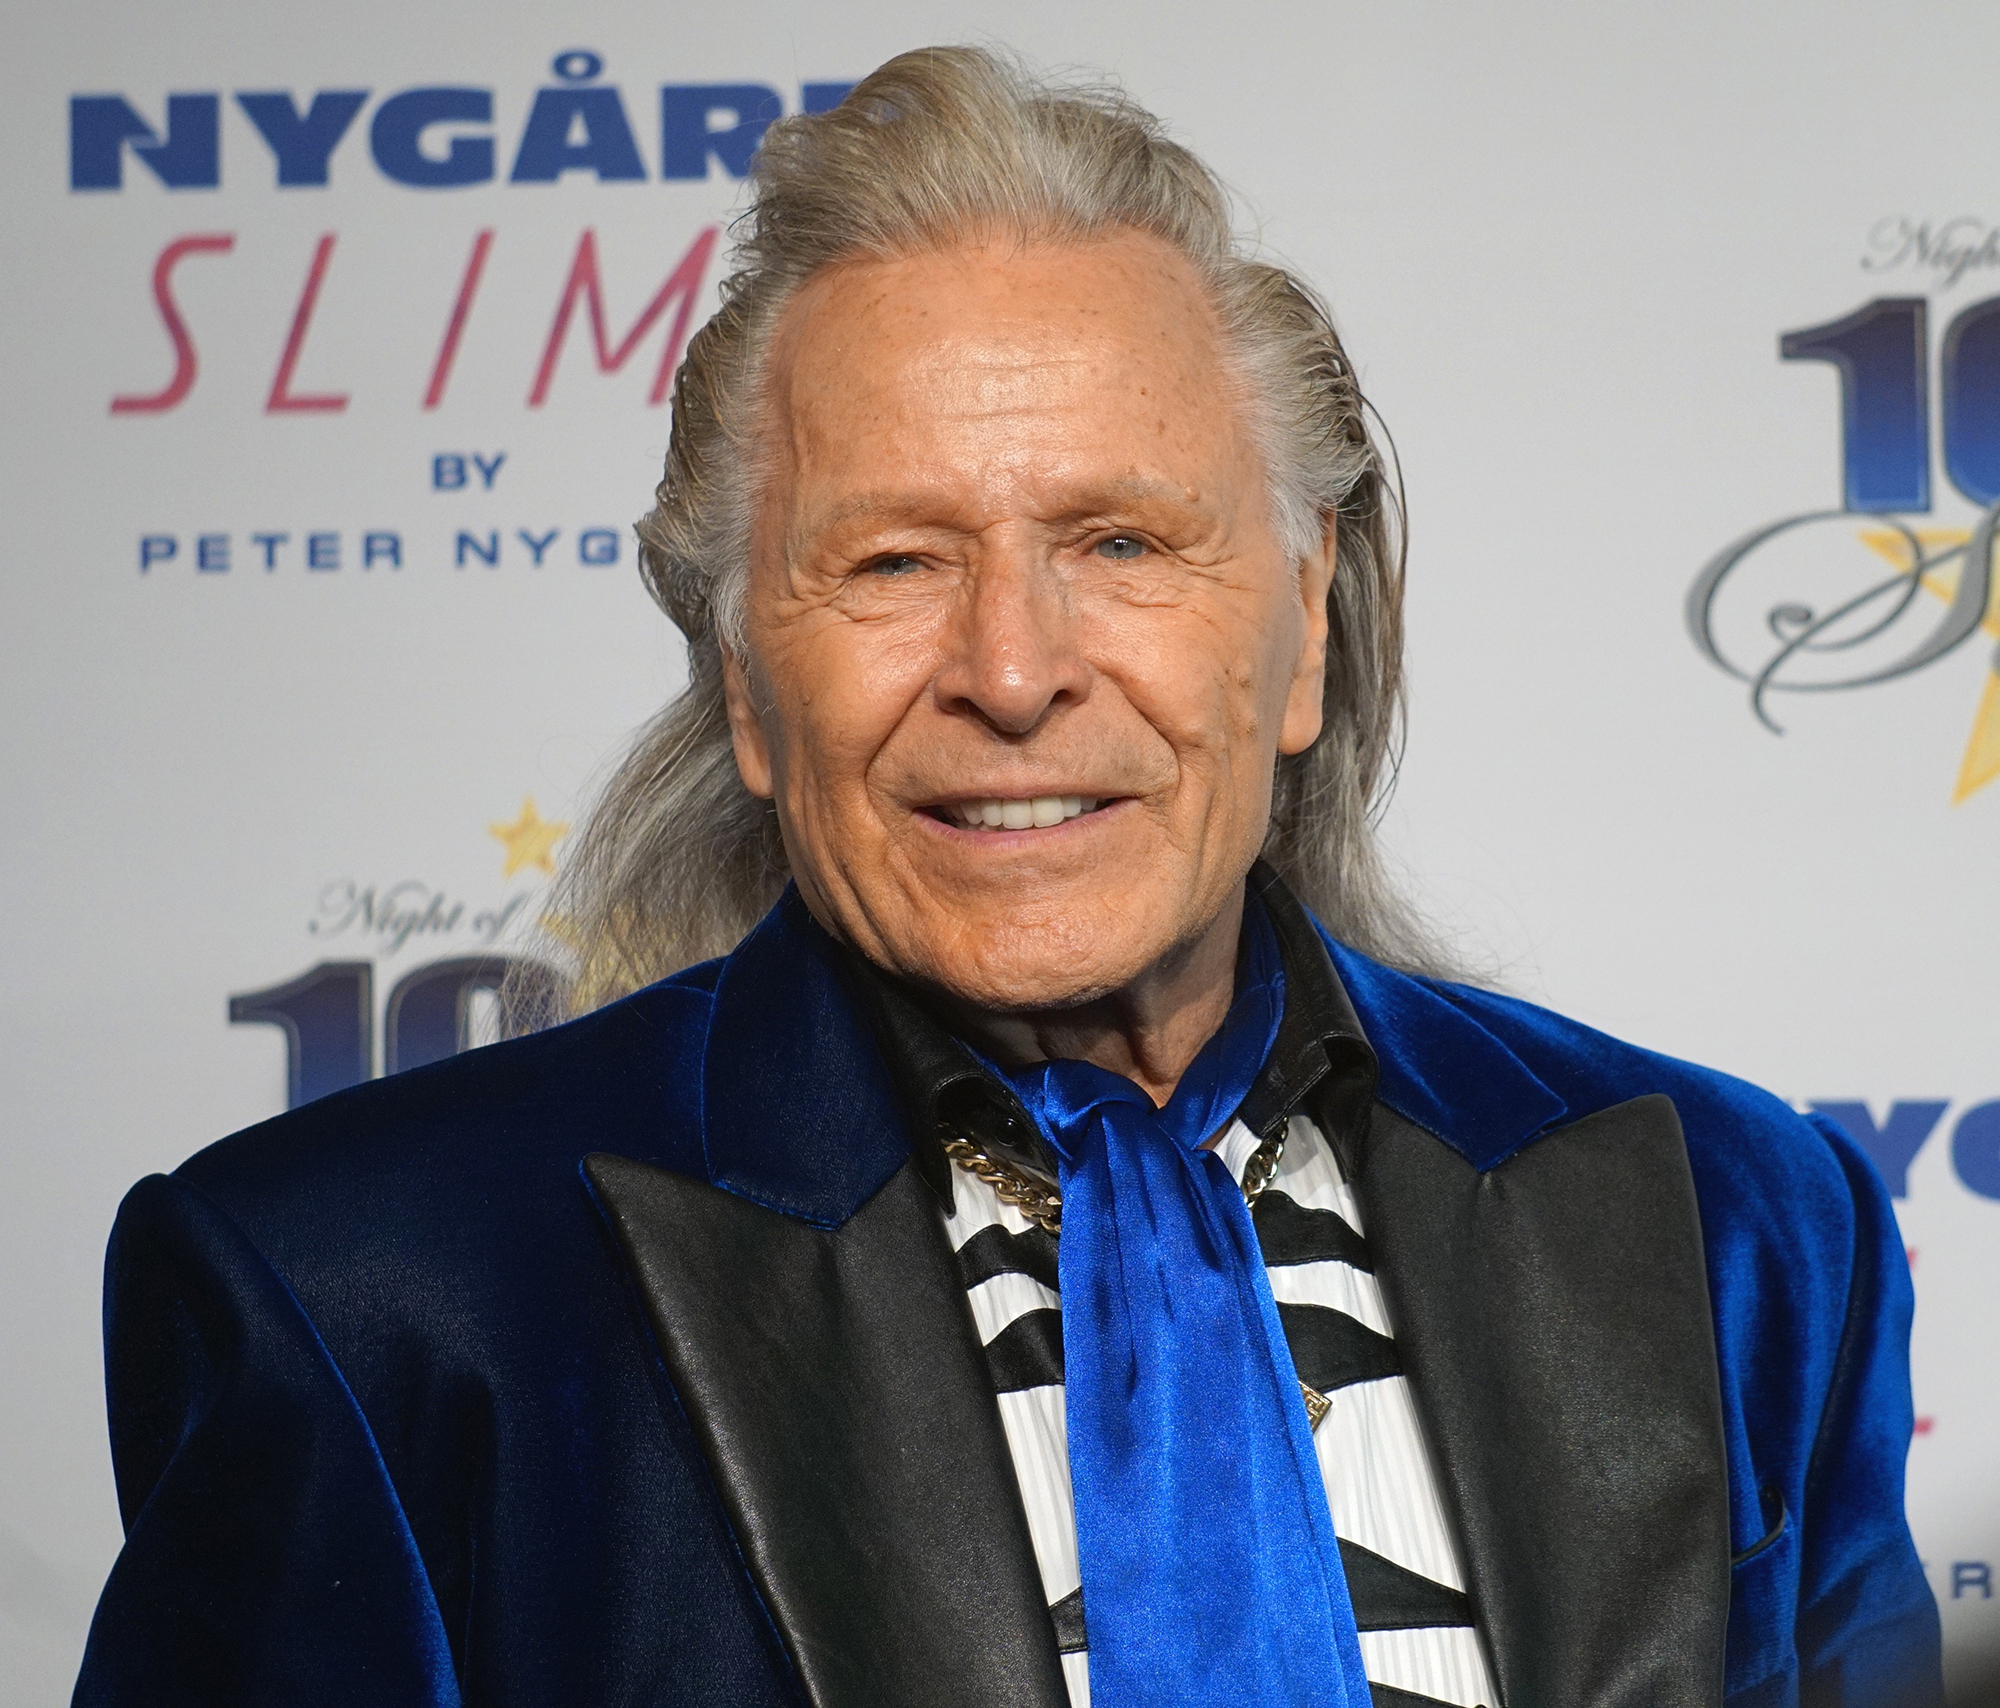 Class action lawsuit alleges Canadian businessman Peter Nygard sexually assaulted at least 10 women